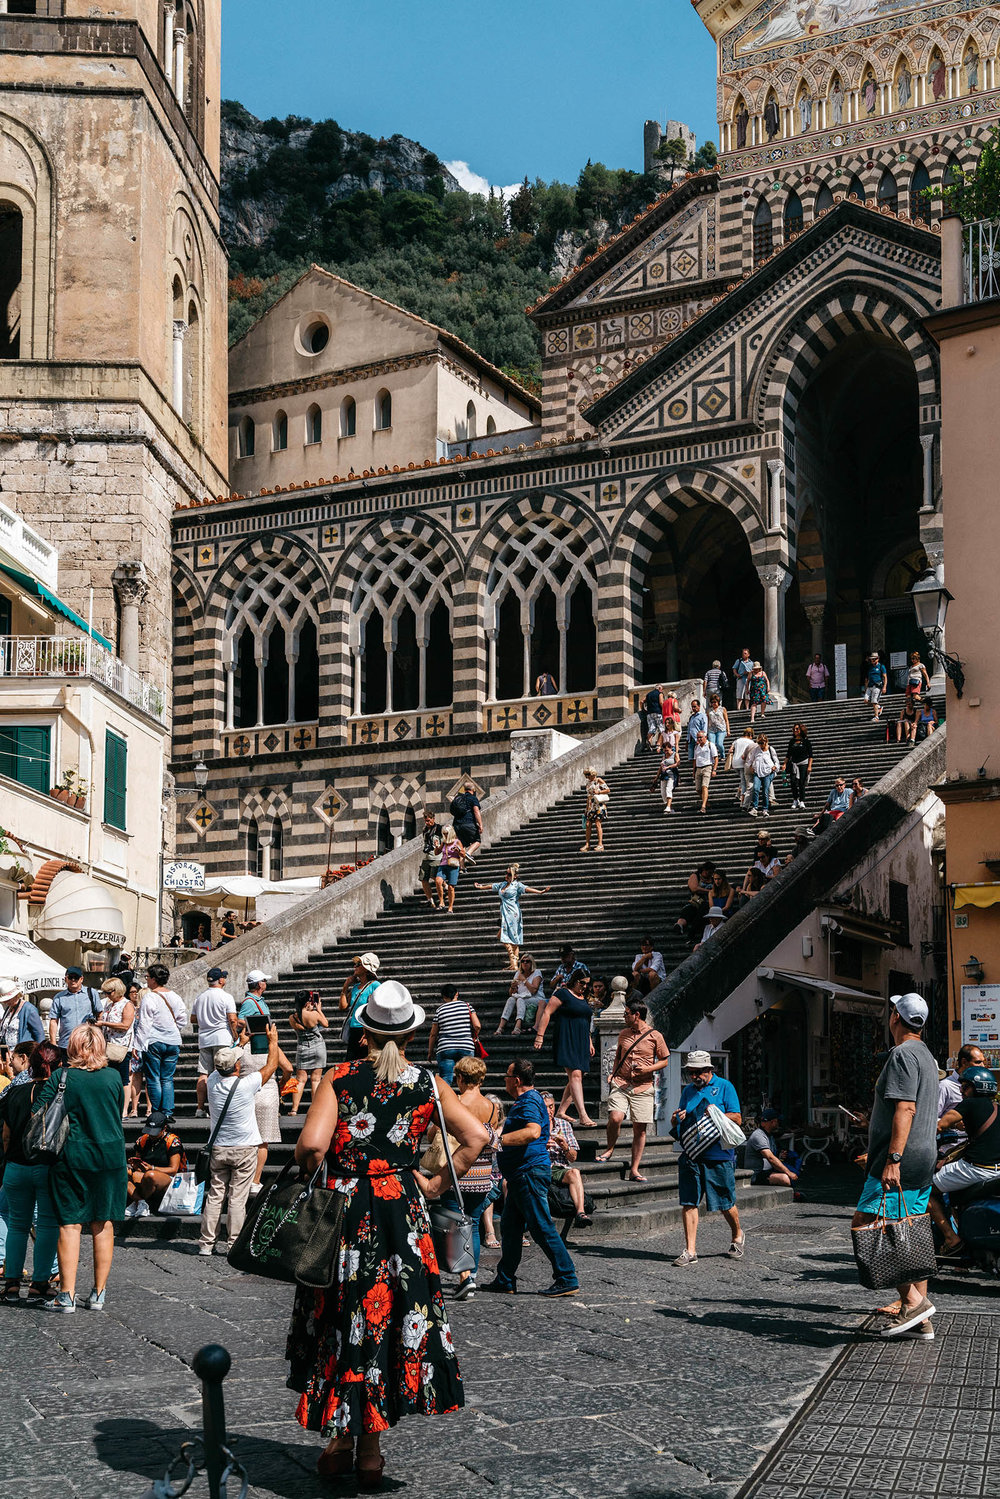 Duomo di Sant'Andrea in Amalfi, the main town of the coast.